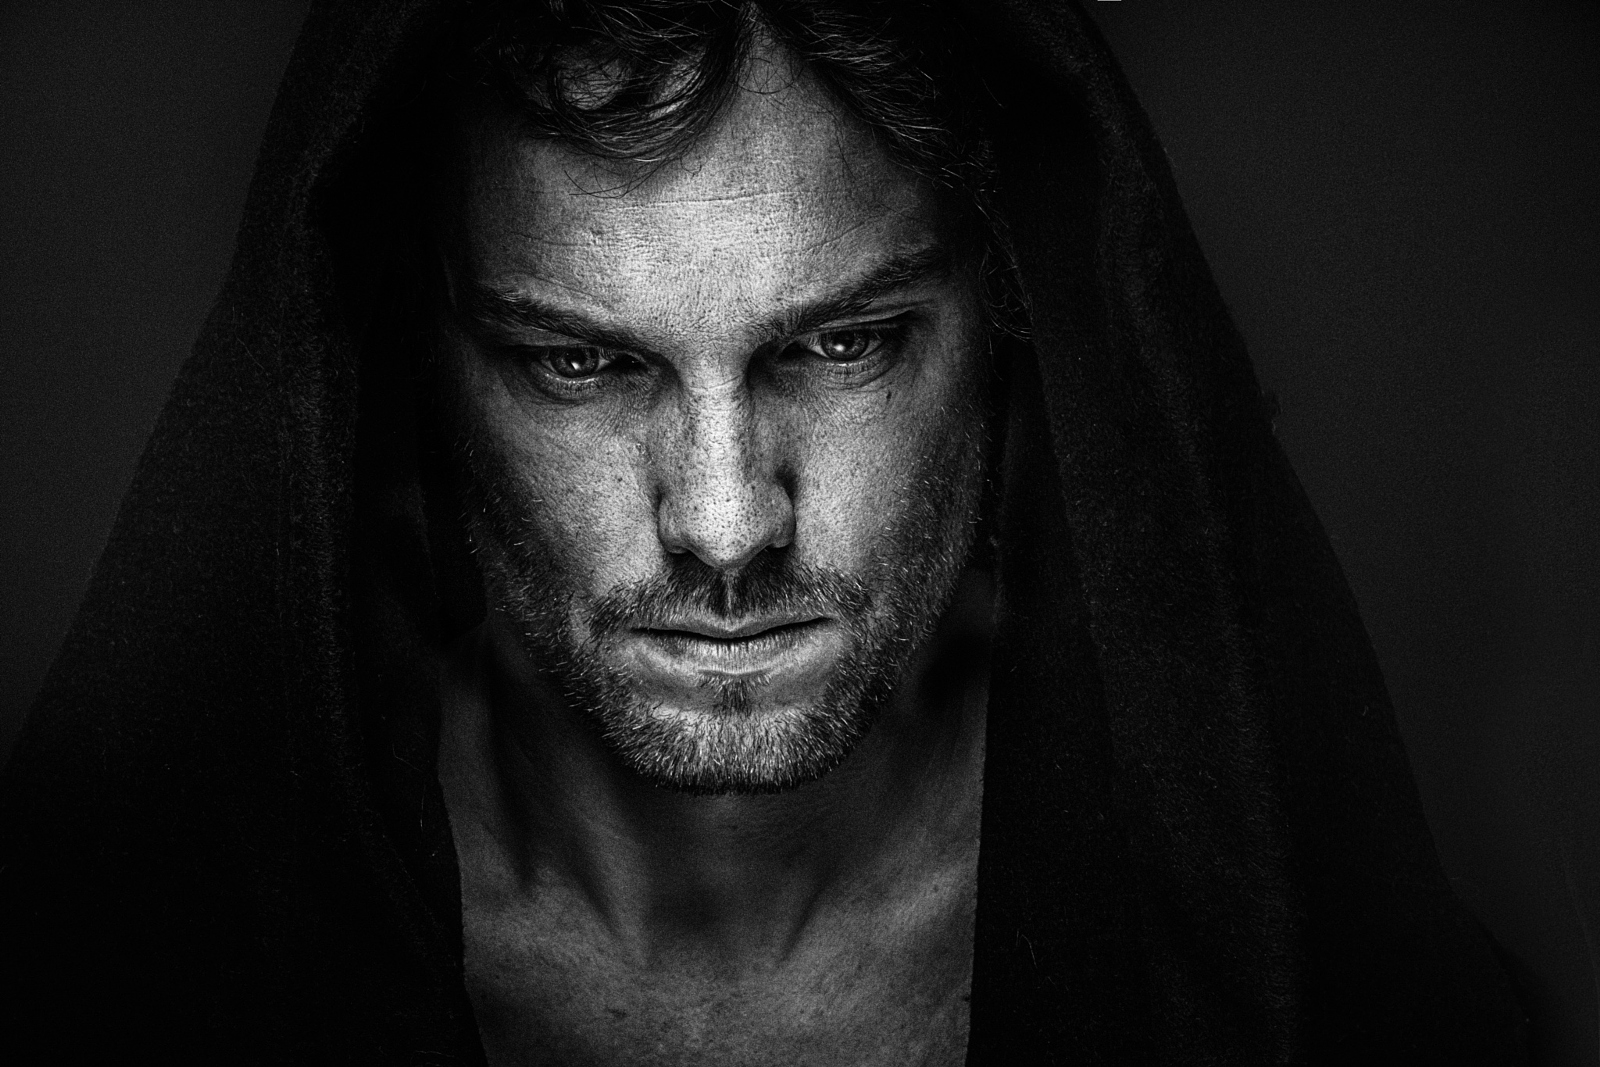 35+ Best Black and White Portraits on 500px